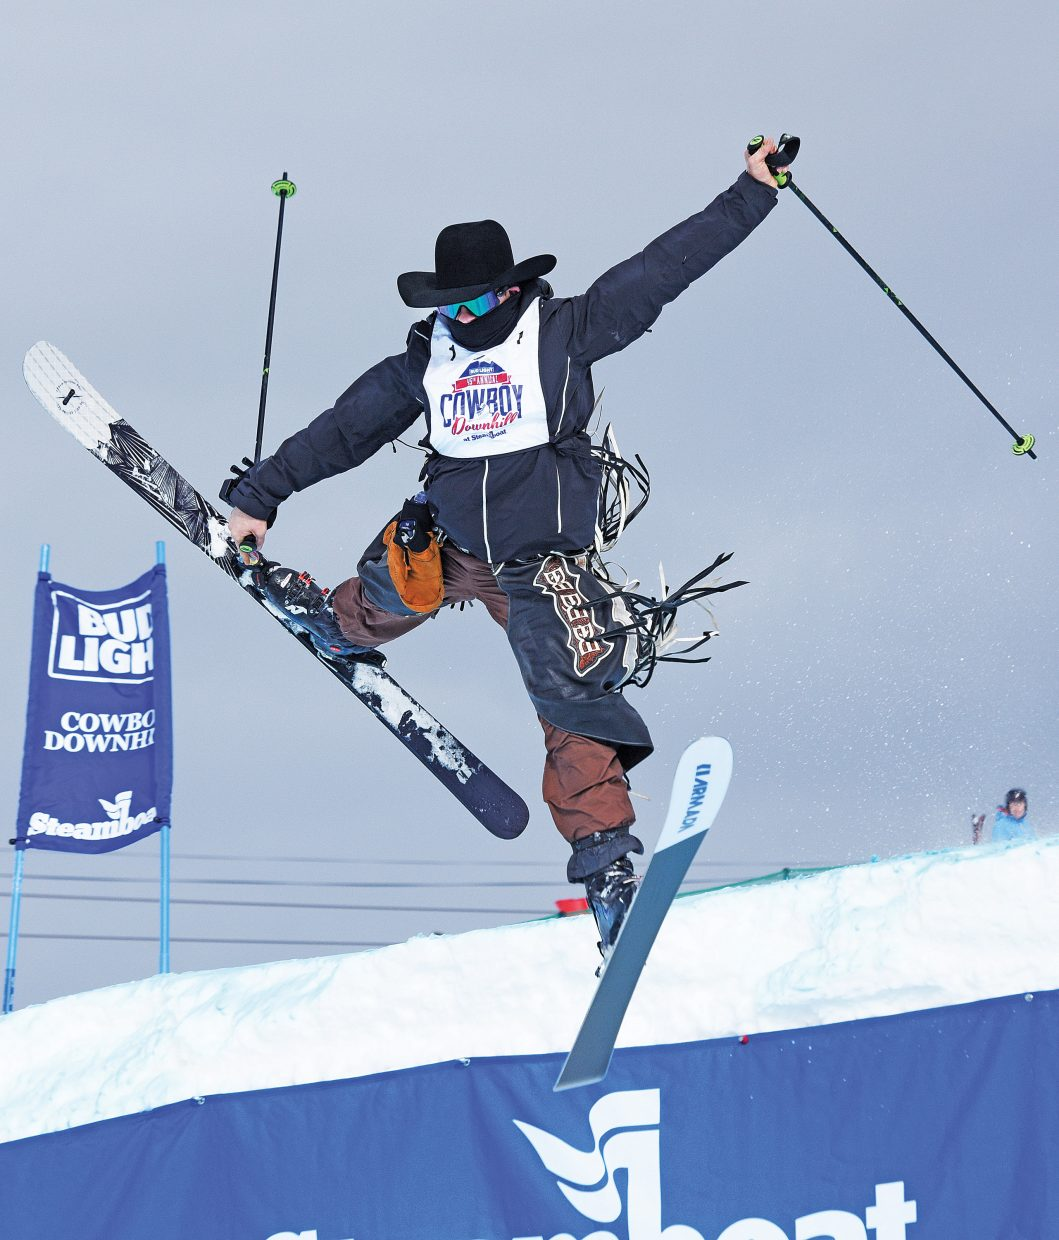 Mamas, don't let your cowboys grow up to be skiers: What you need to know about the Cowboy Downhill